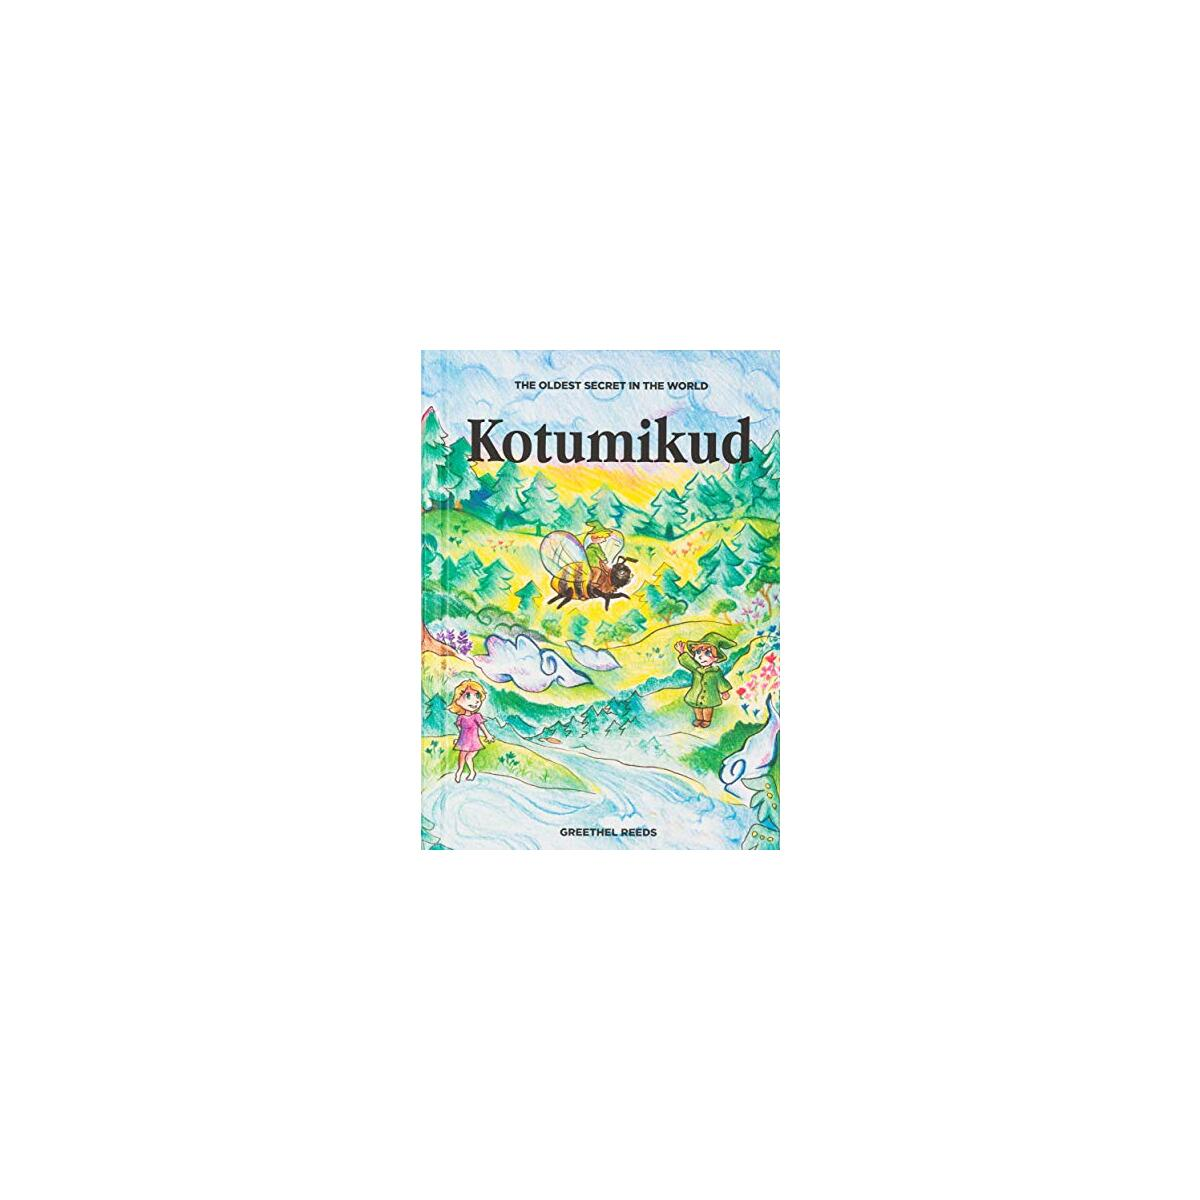 Kotumikud – Bedtime Story Books For 3 - 5 Years Old Children - High Quality Hardcover Toddler Books For Life Lessons | Birthday Gifts For Girls & Boys [hardcover] Greethel Reeds,Marta J [Jan 01, 2018]